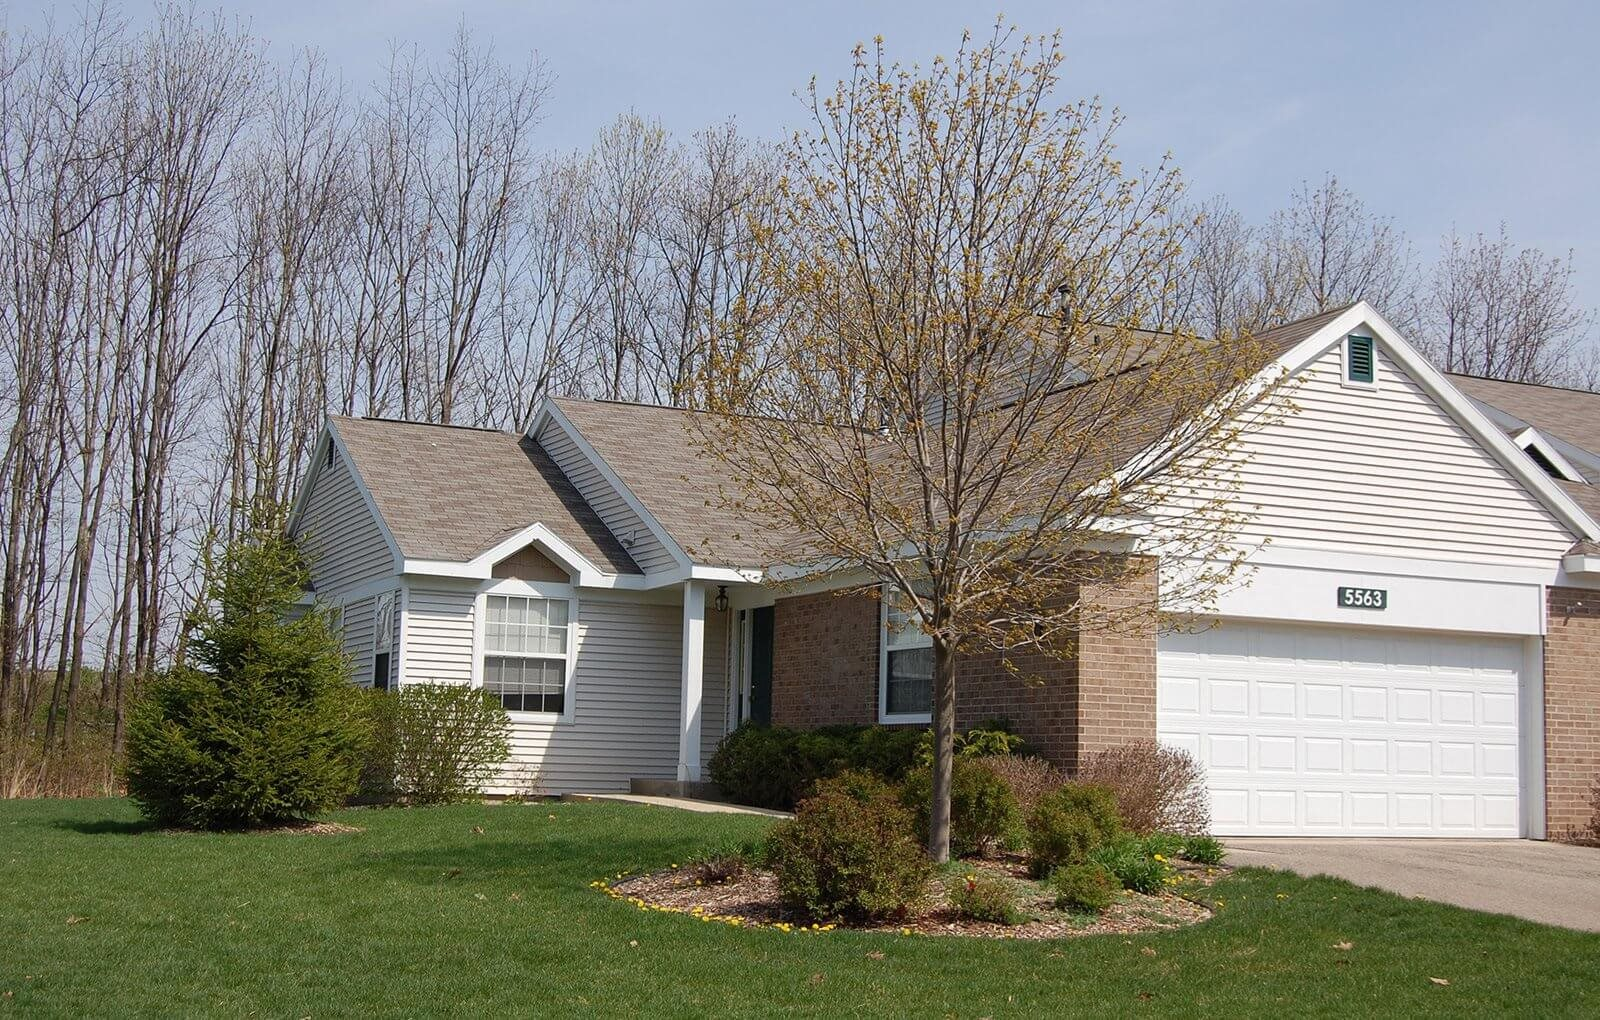 Attached Garages to Townhomes at Gull Prairie/Gull Run Apartments and Townhomes, Kalamazoo, MI